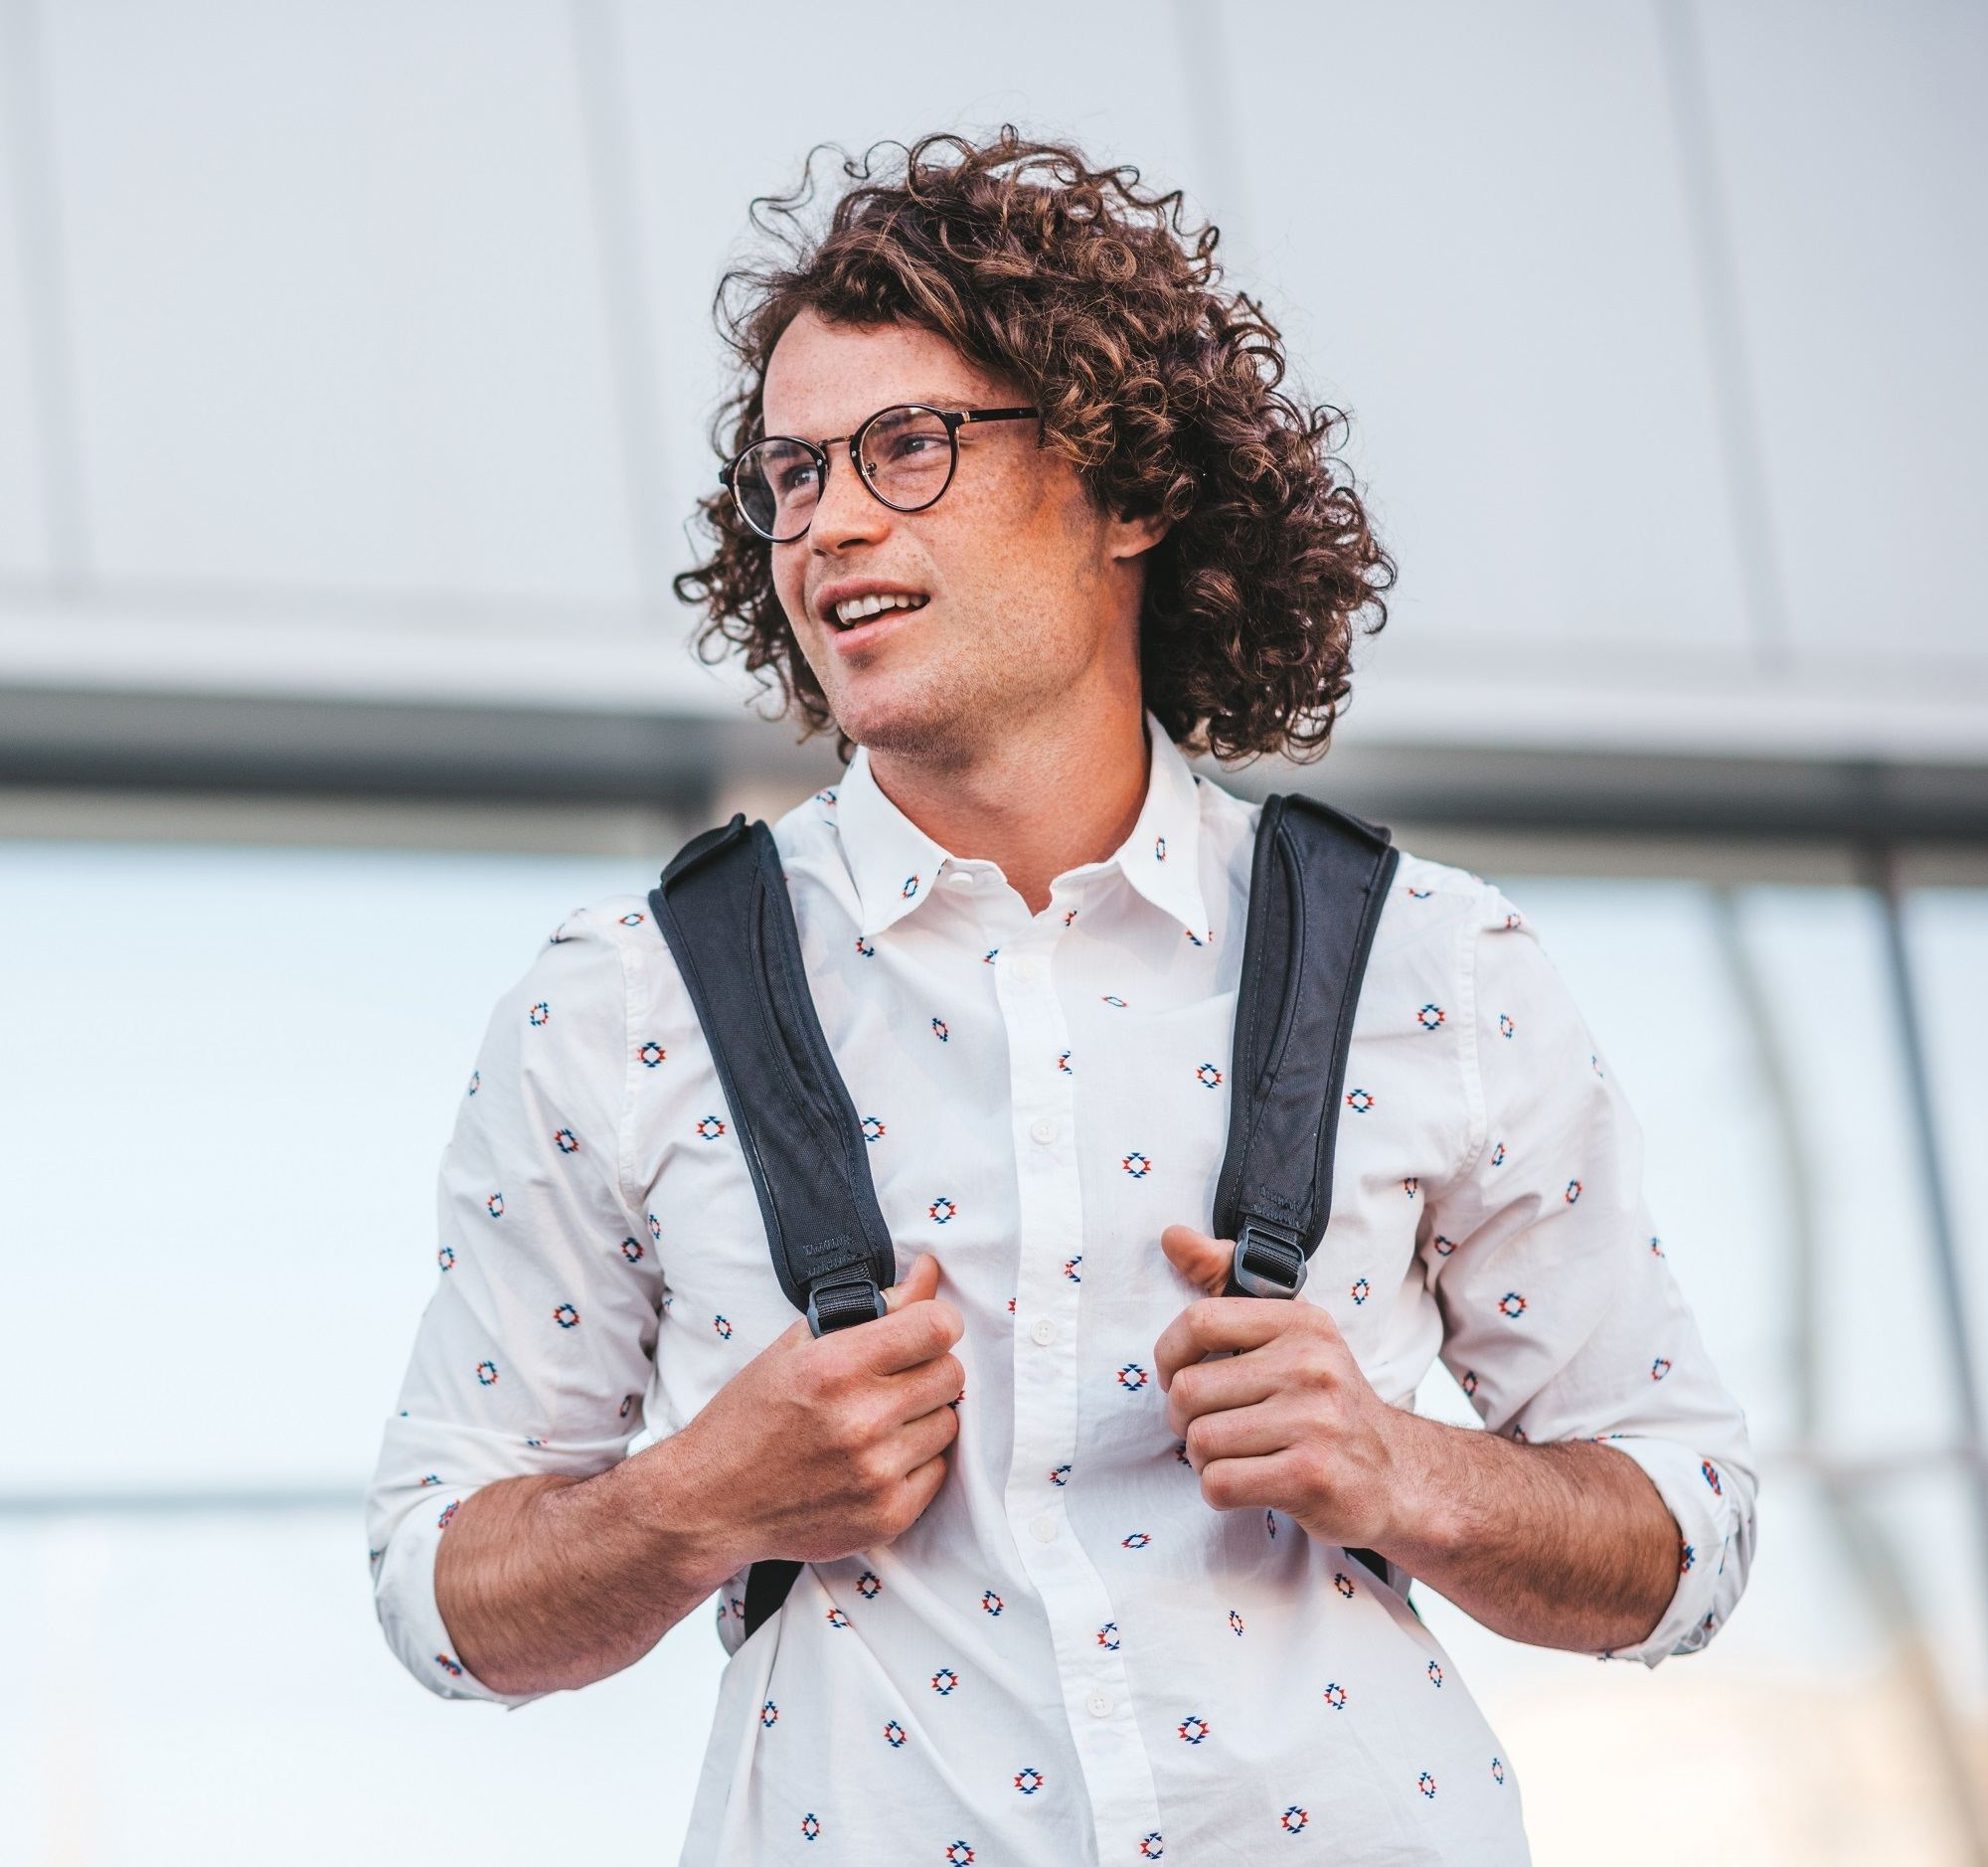 Curly hair main: Man carrying a backpack and wearing a white polo and eyeglasses with brown curly hair on an outdoor location